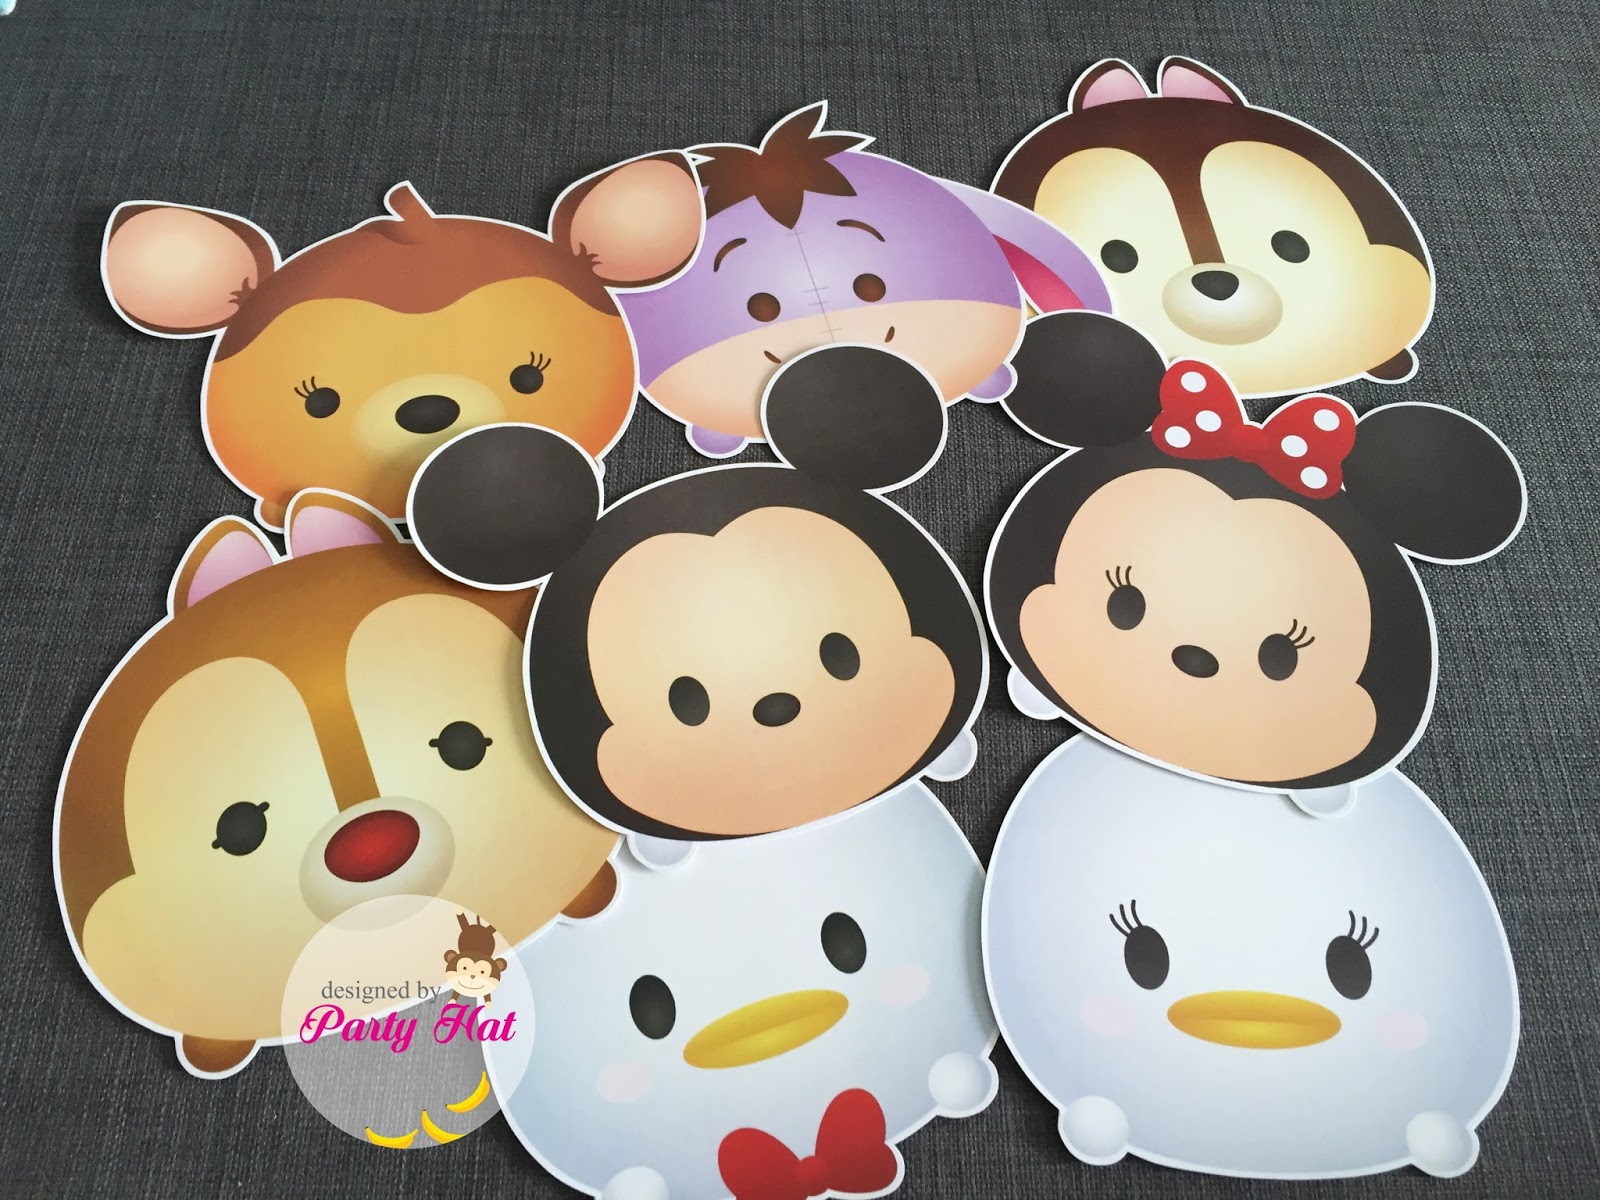 Party Hat Disney Tsum Tsum 1 Year Old Birthday For Jayden